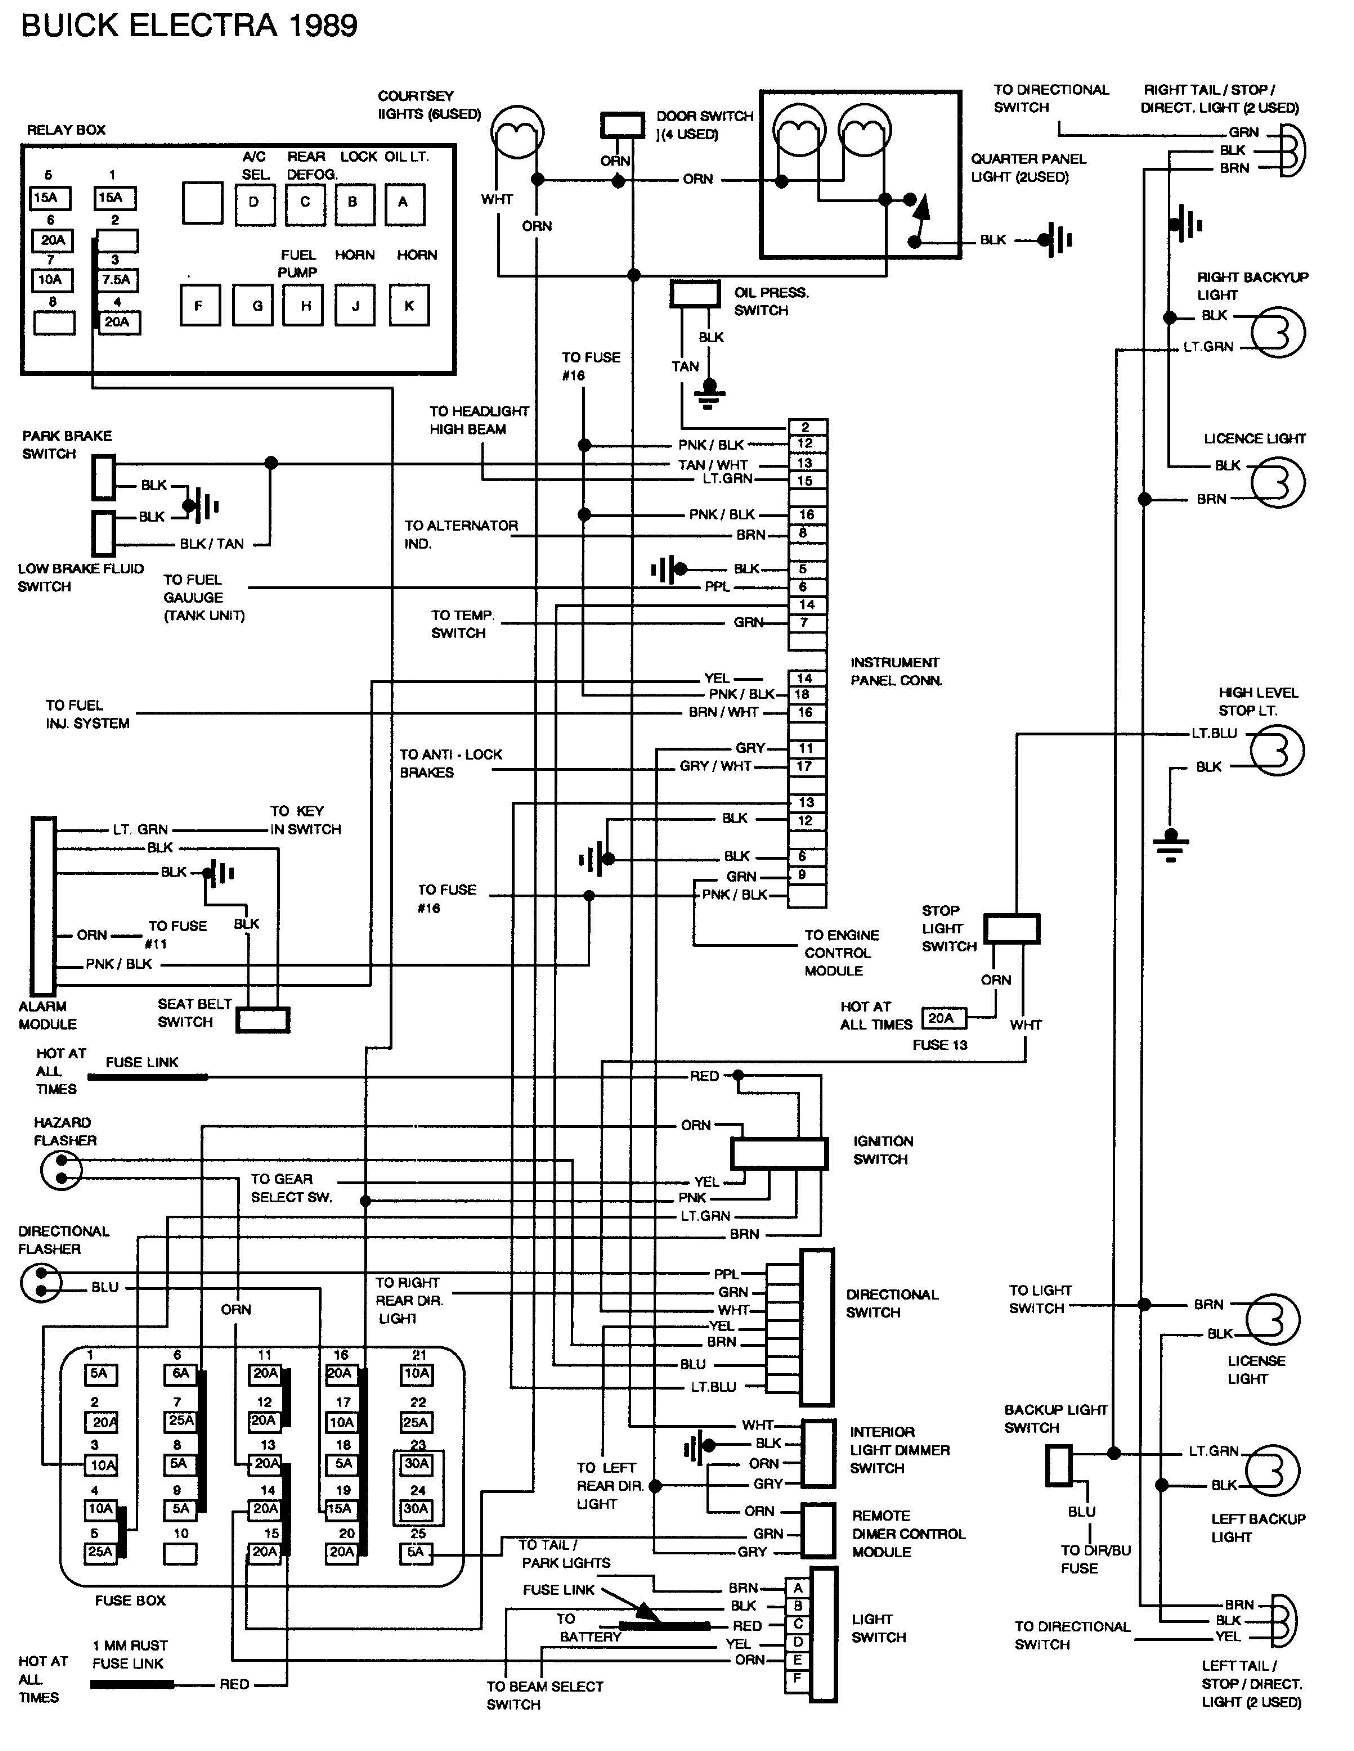 omron mk2p s wiring diagram Download-fuse box diagram moreover bmw wiring diagrams further bmw 325i rh koloewrty co 4-a